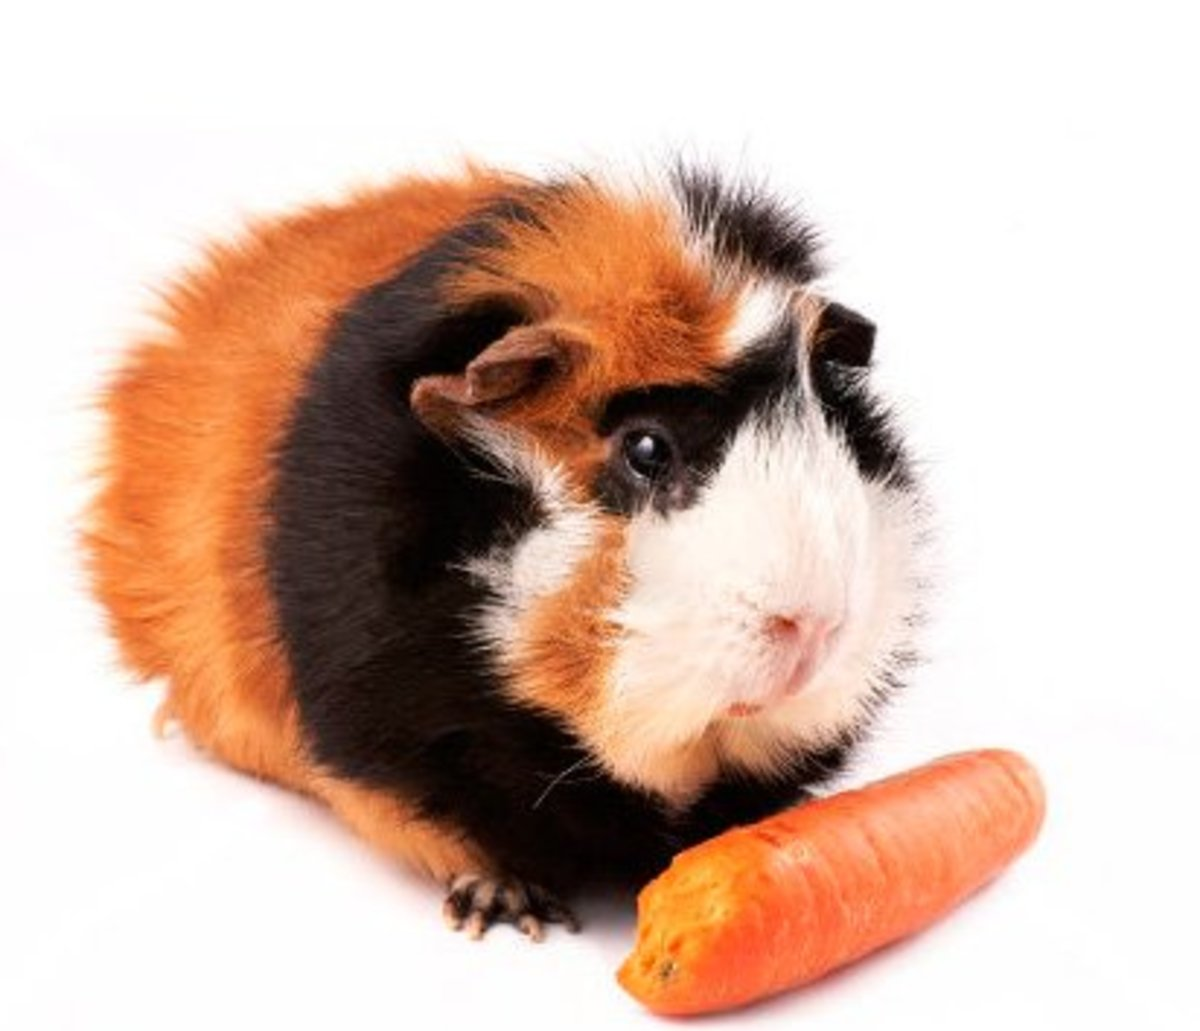 A tortoiseshell and white Abyssinian guinea pig.